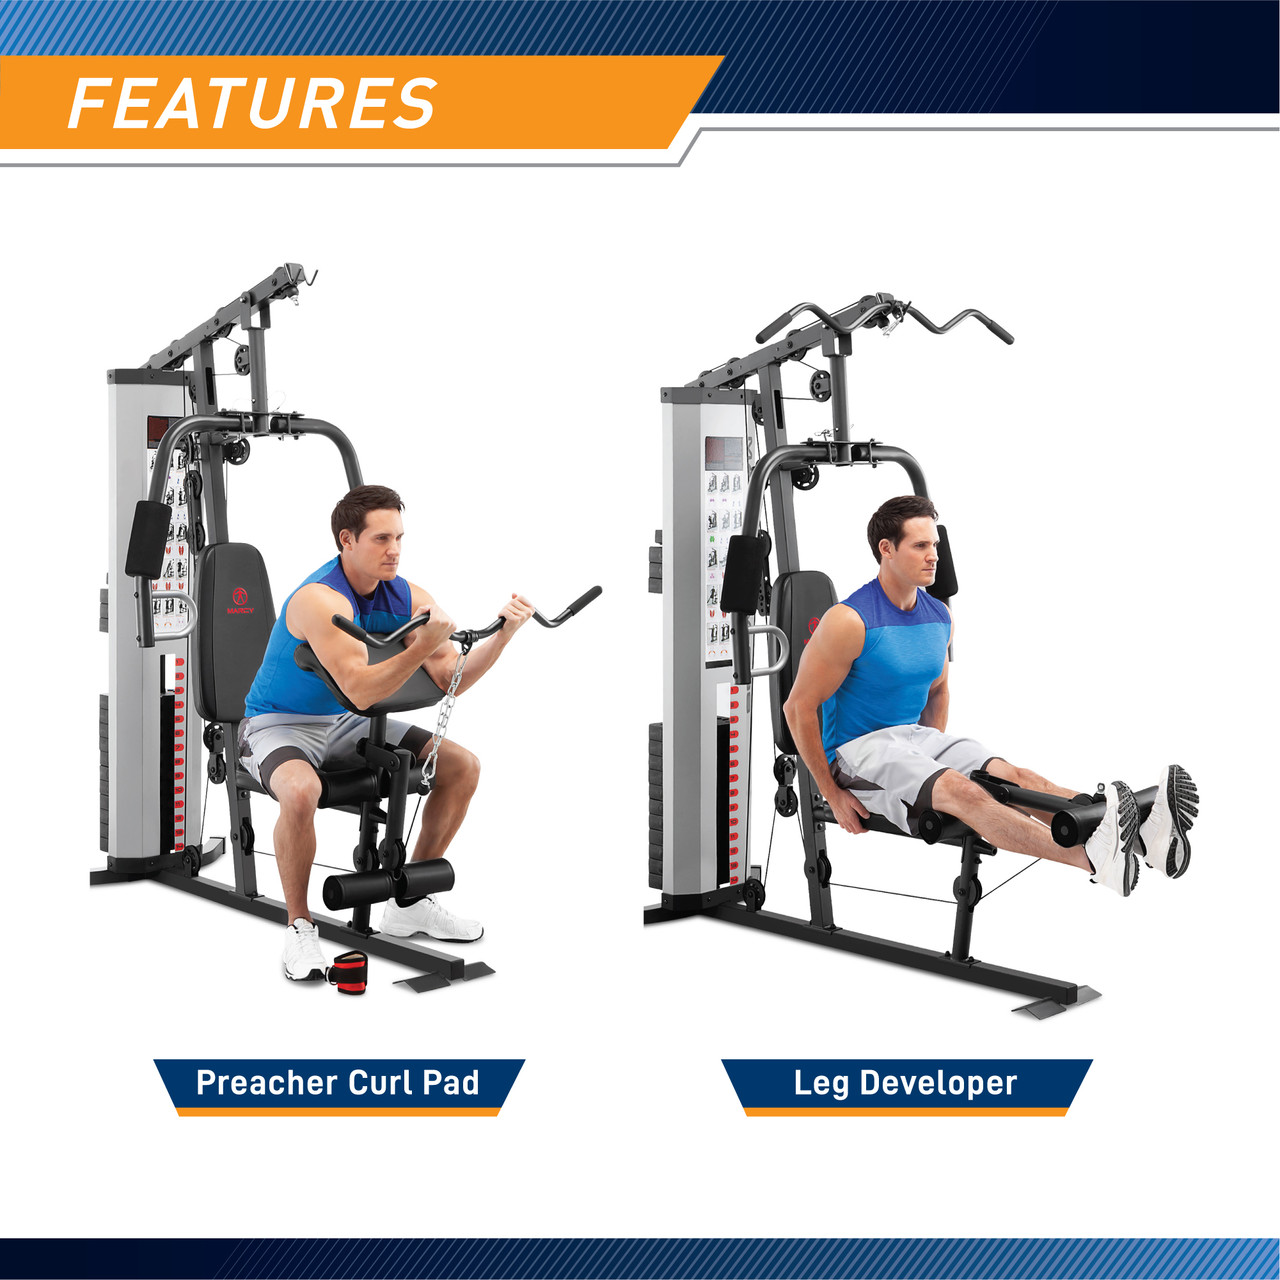 The Marcy 150 Lb Weight Stack Home Gym - MWM-988 includes a lat bar for back workouts